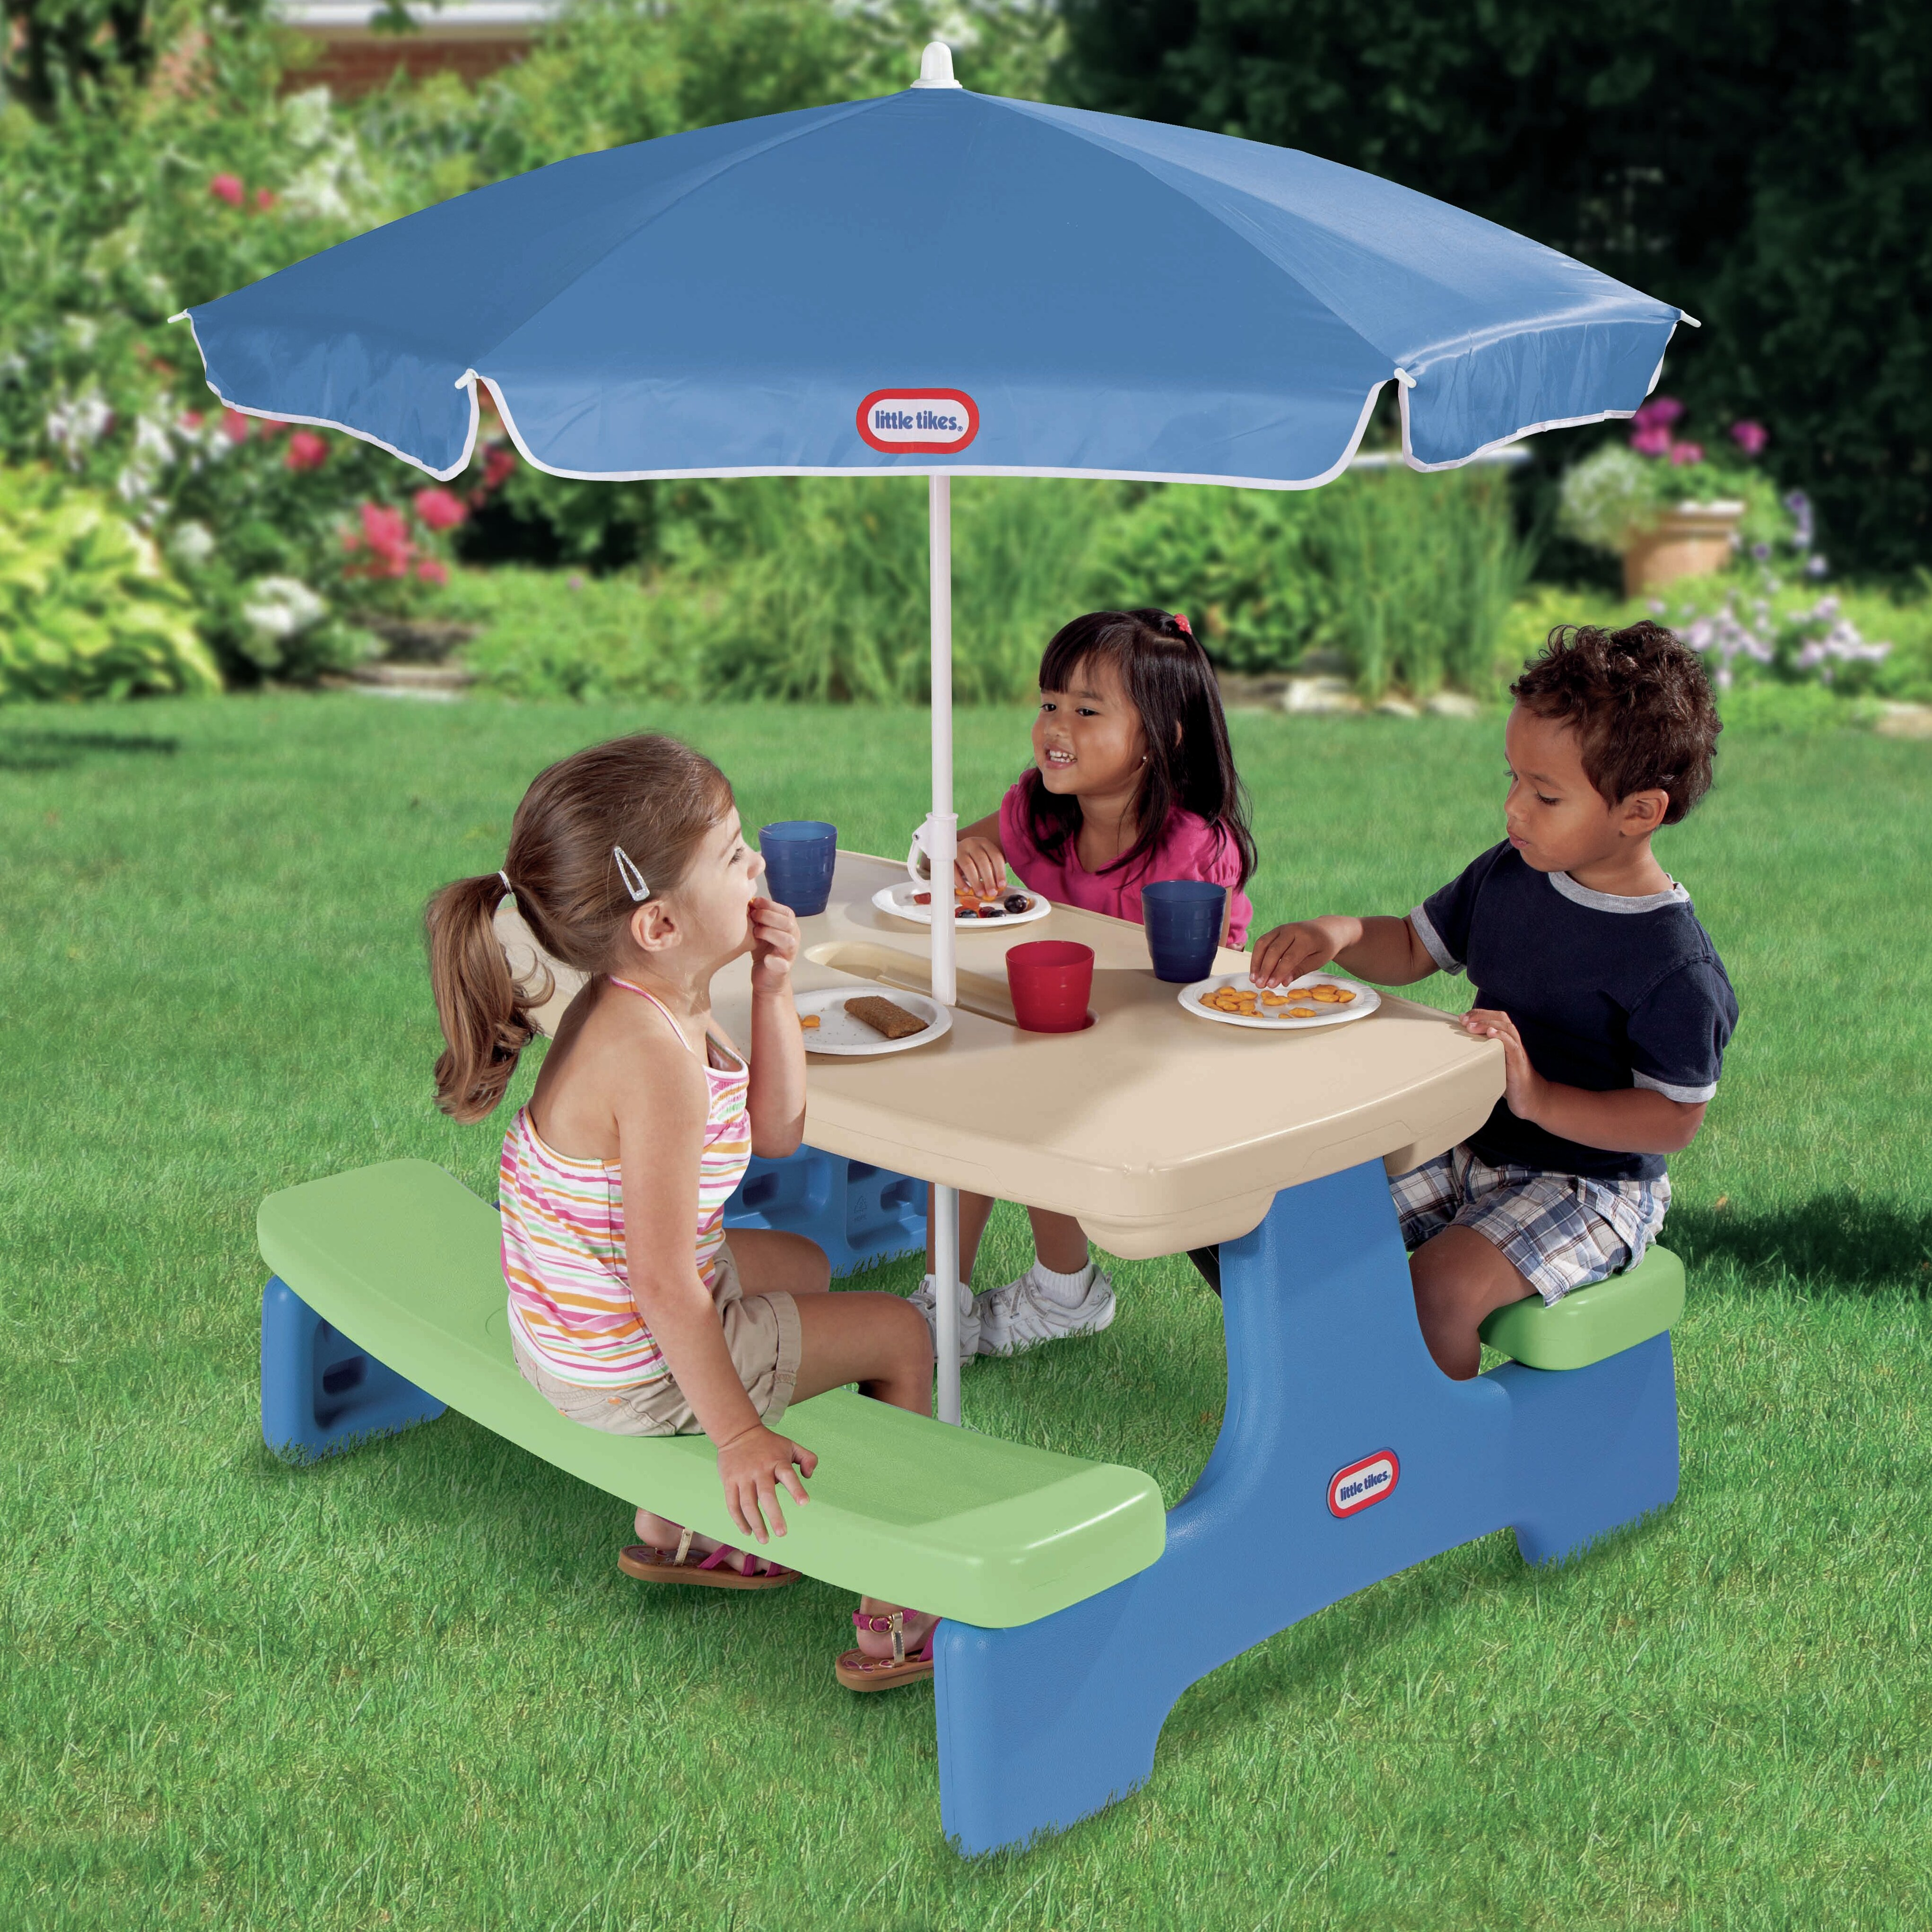 Little tikes easy store picnic table with umbrella - Children s picnic table with umbrella ...